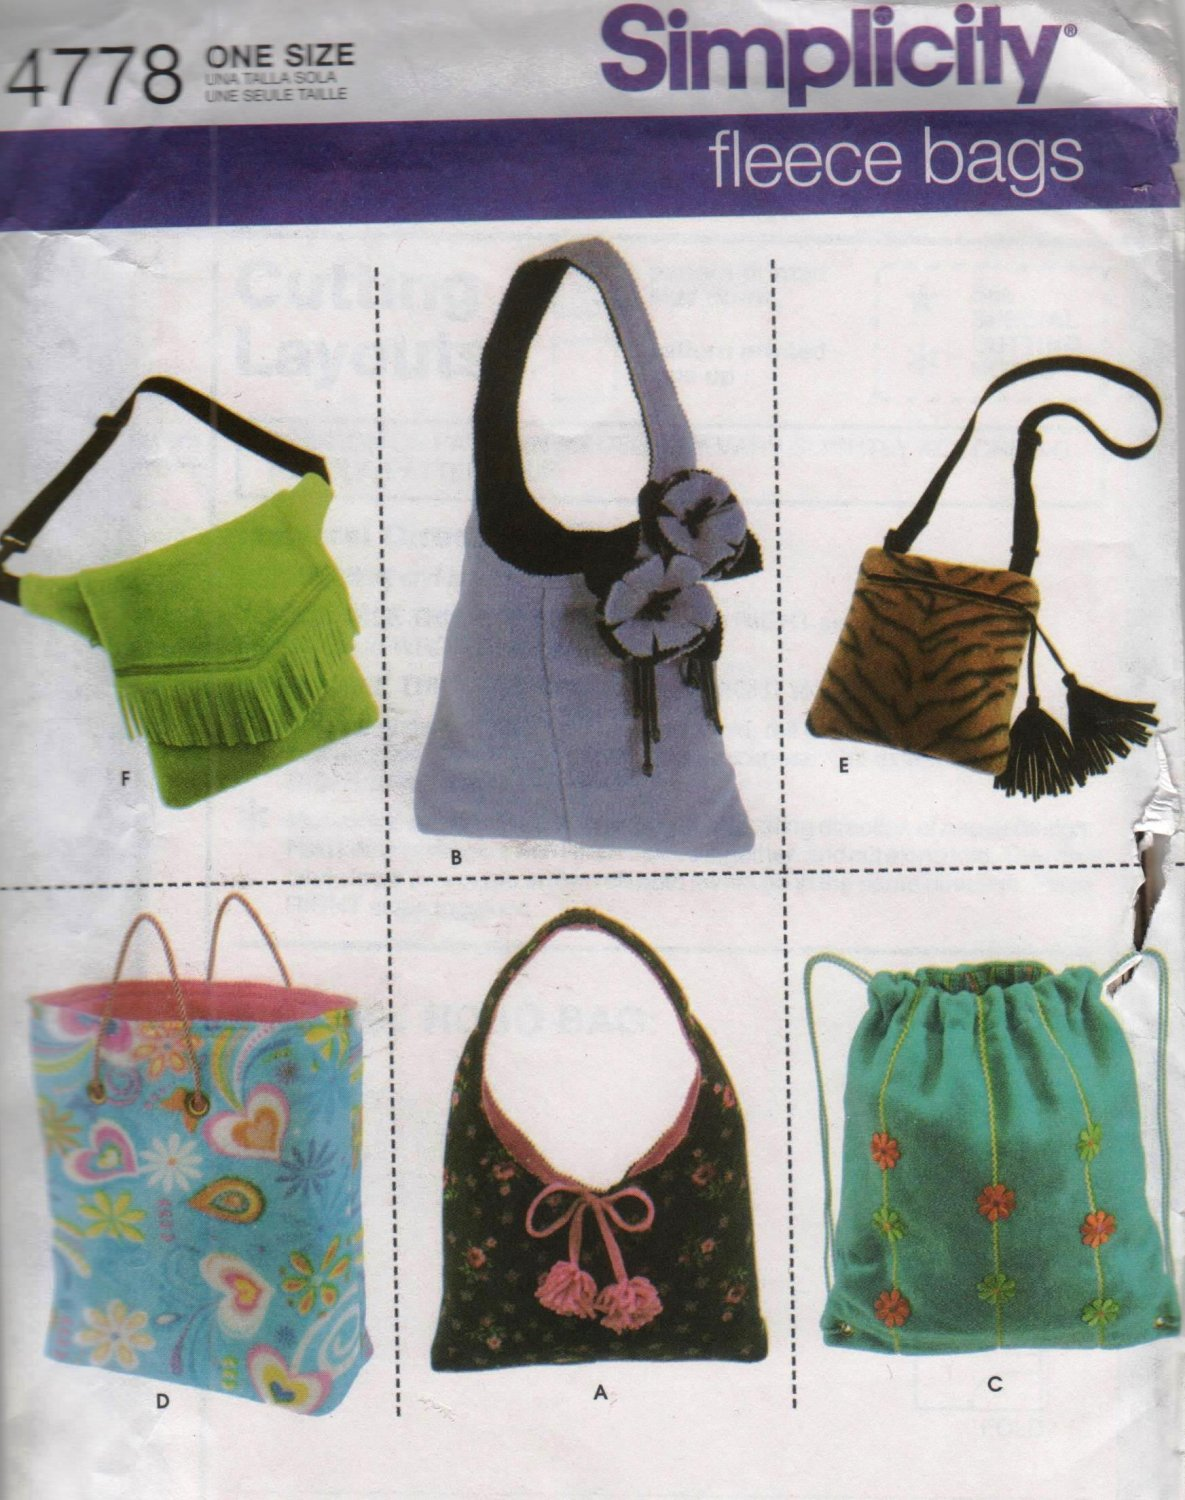 Simplicity 4778 Fleece Bags Purses Totes Sewing pattern